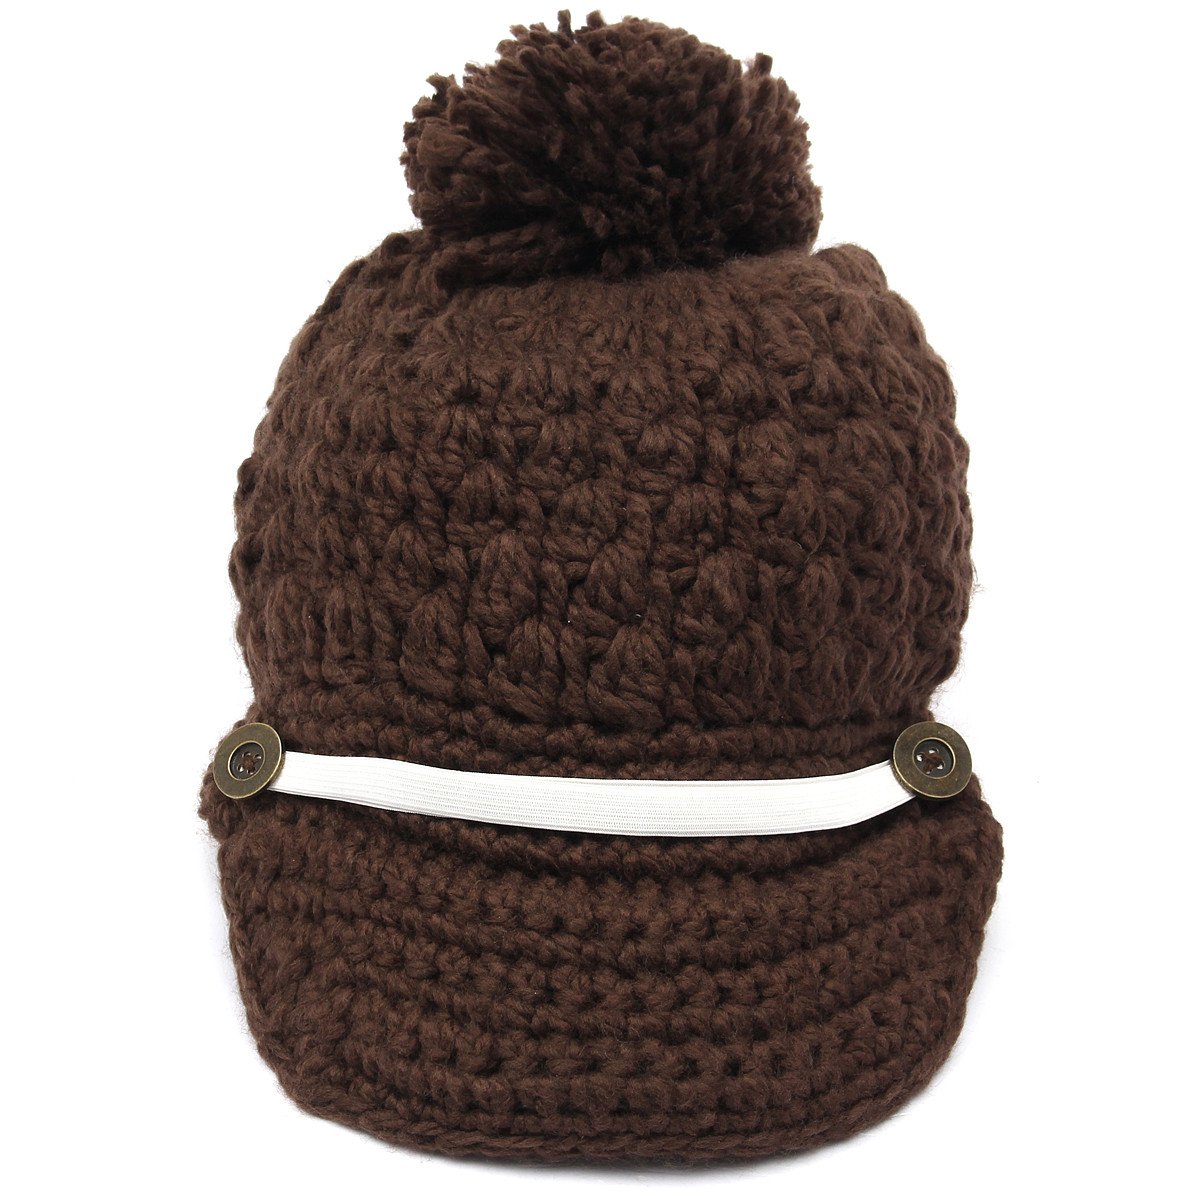 05809799347b4 Women Ladies Braided Knitted Baggy Beanie Knit Crochet Ski Hat Button  Decorative Baseball Cap